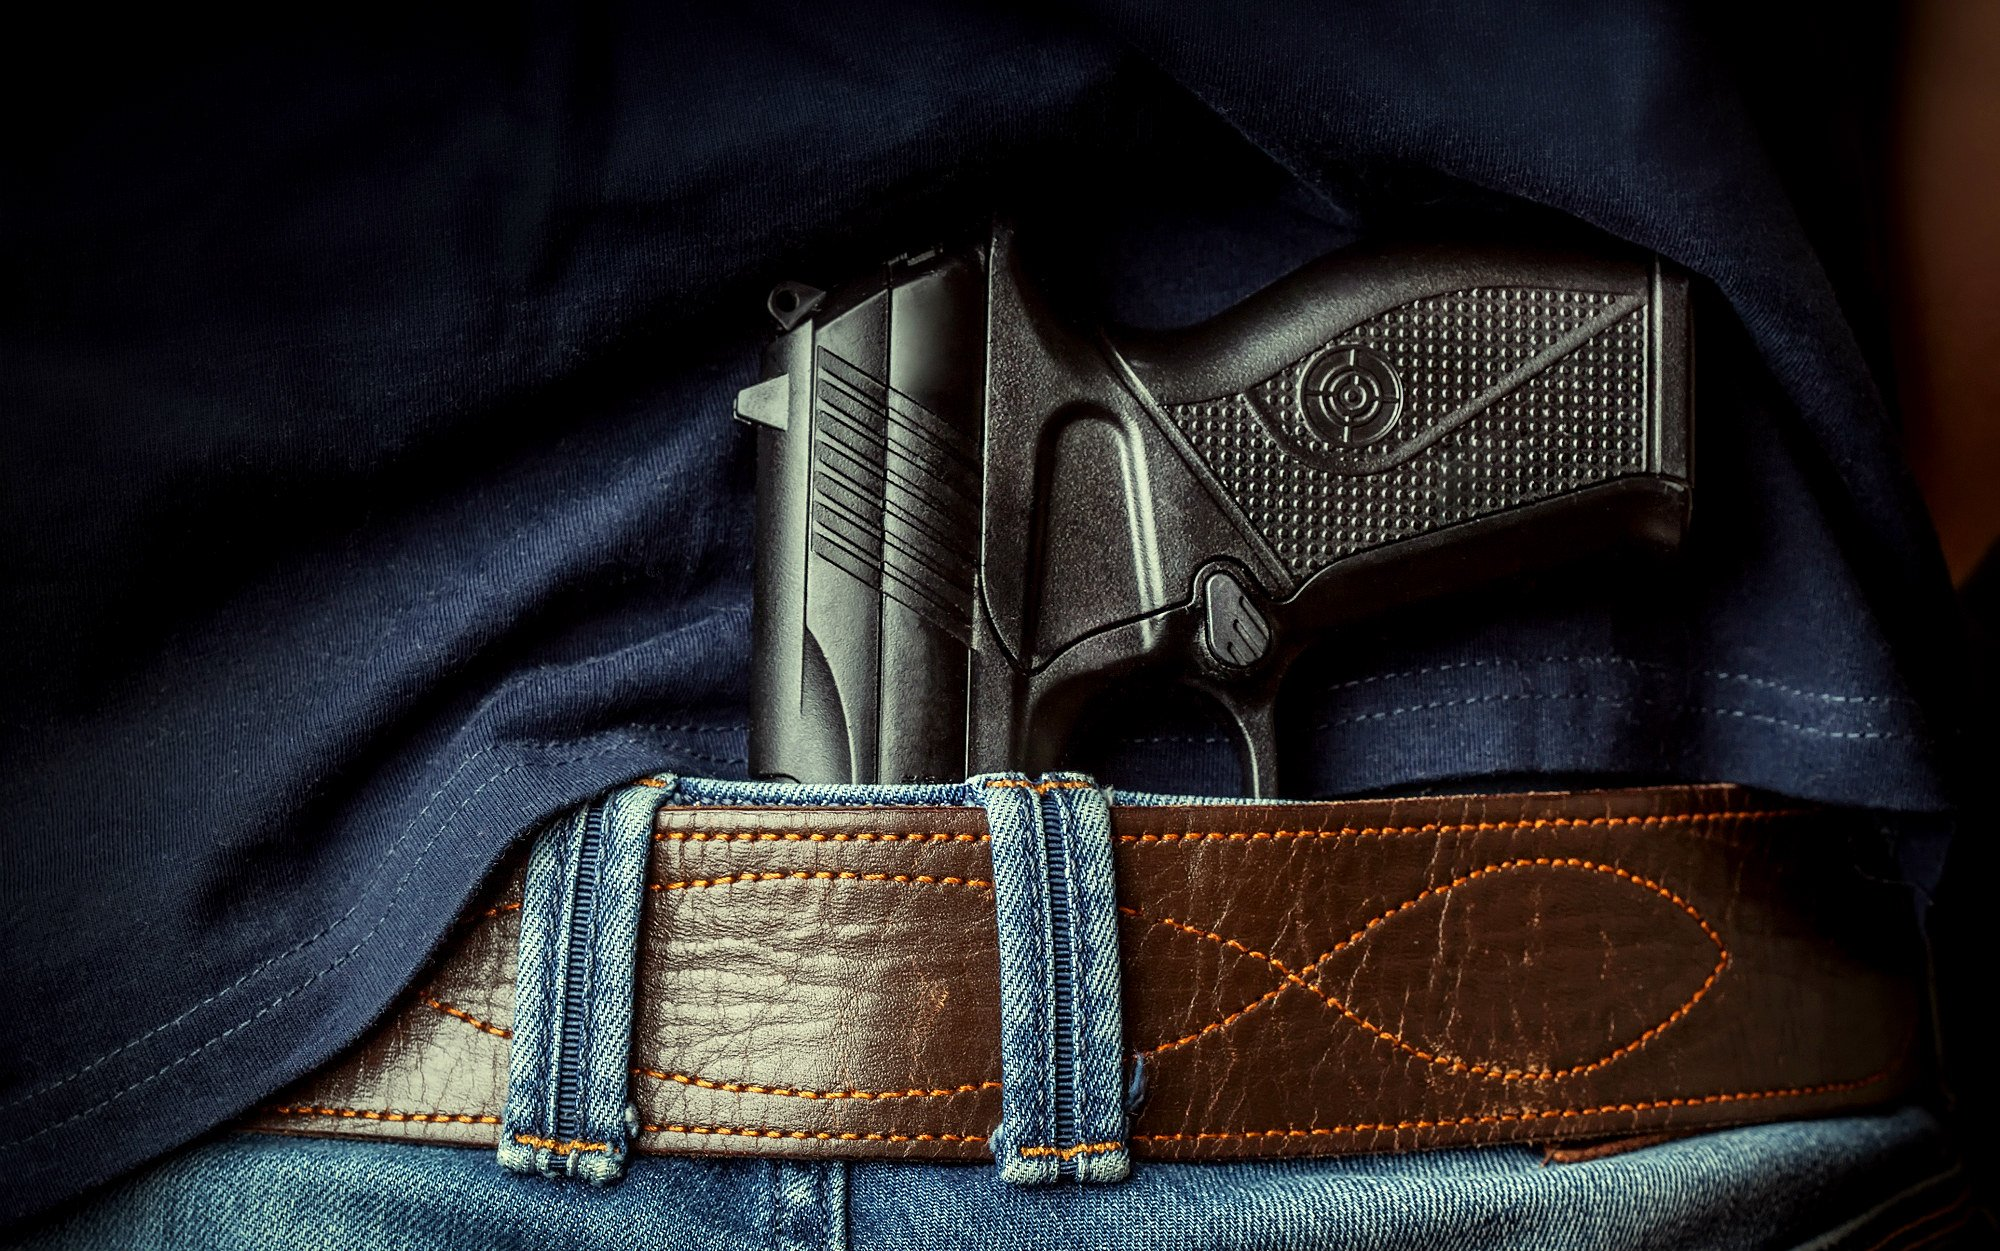 The 25 Best Concealed Carry Pistols